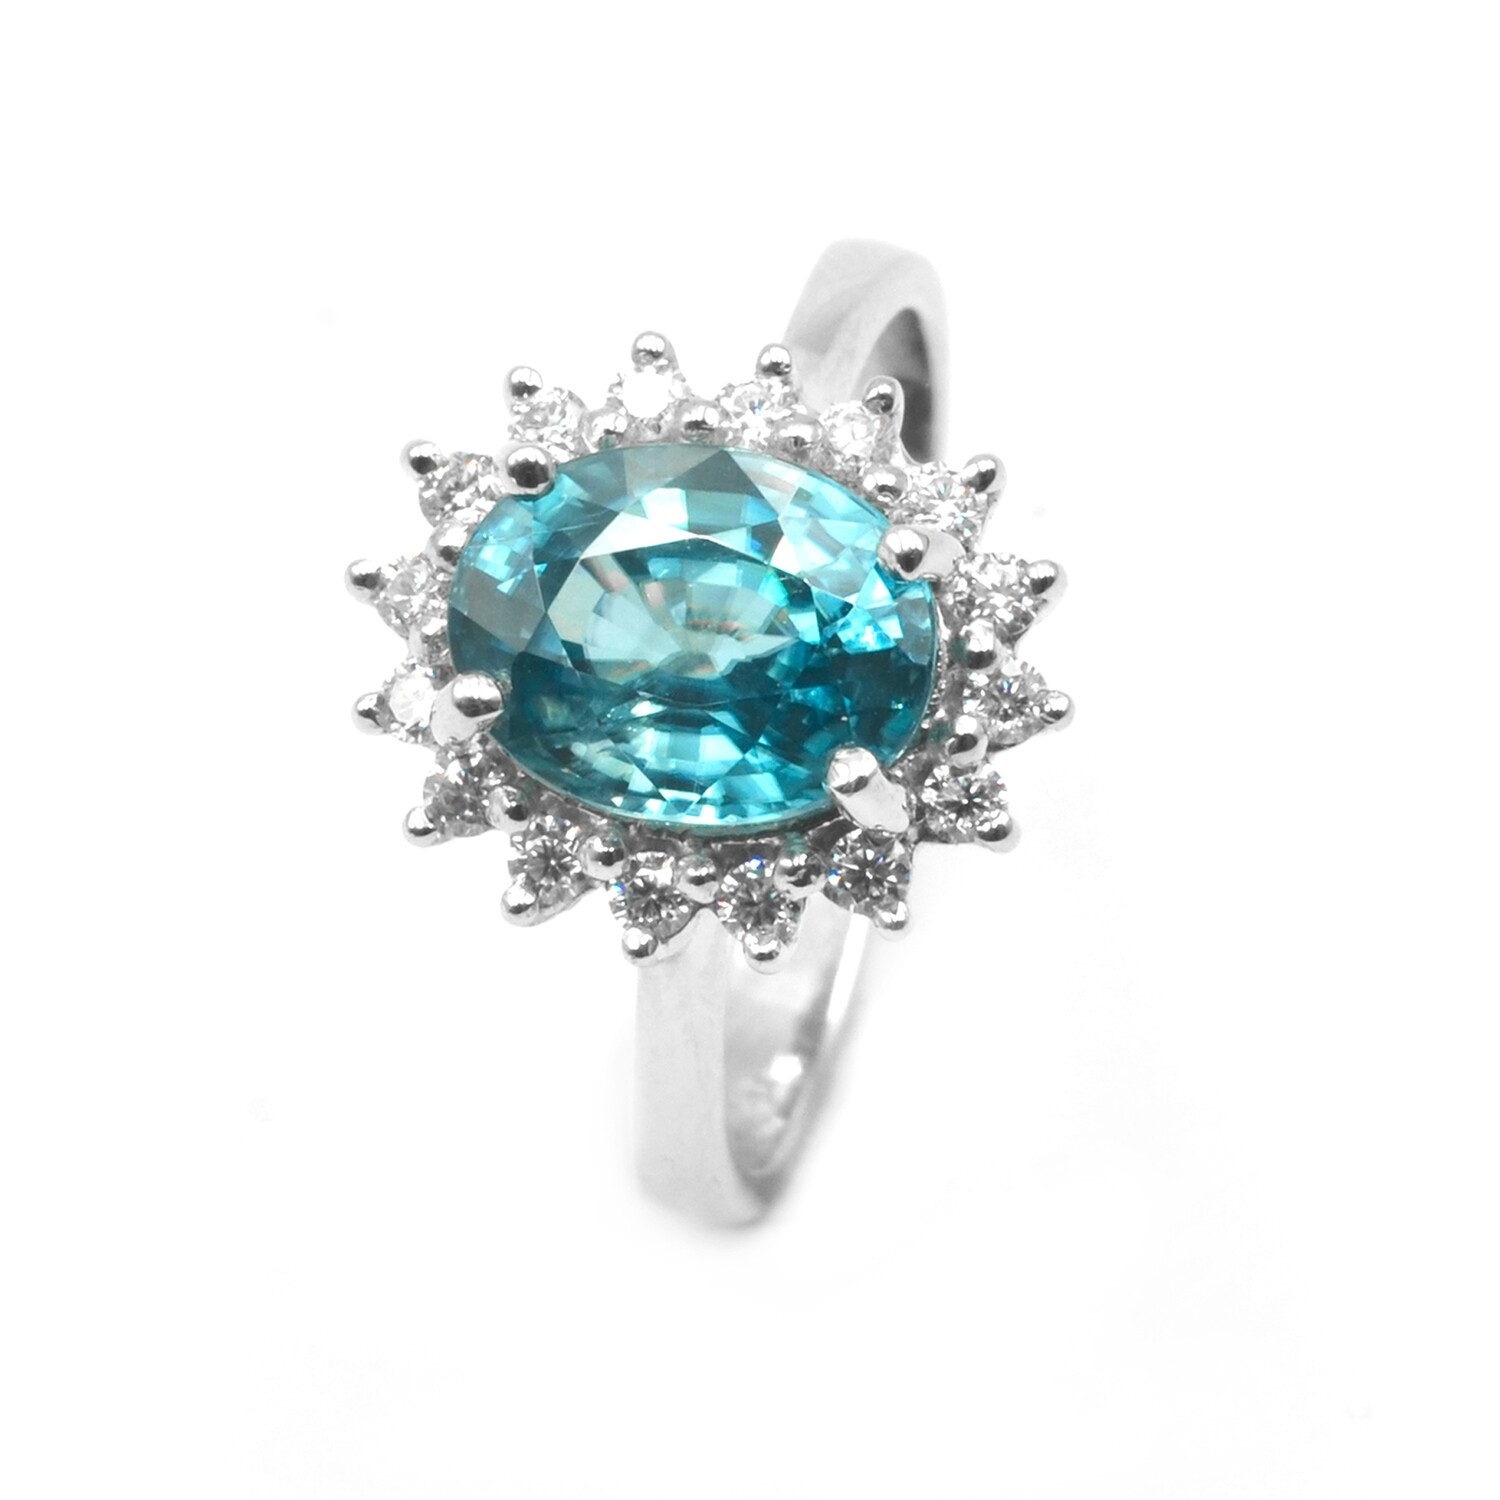 18k White Gold Ring with Blue Zircon and Moissanite